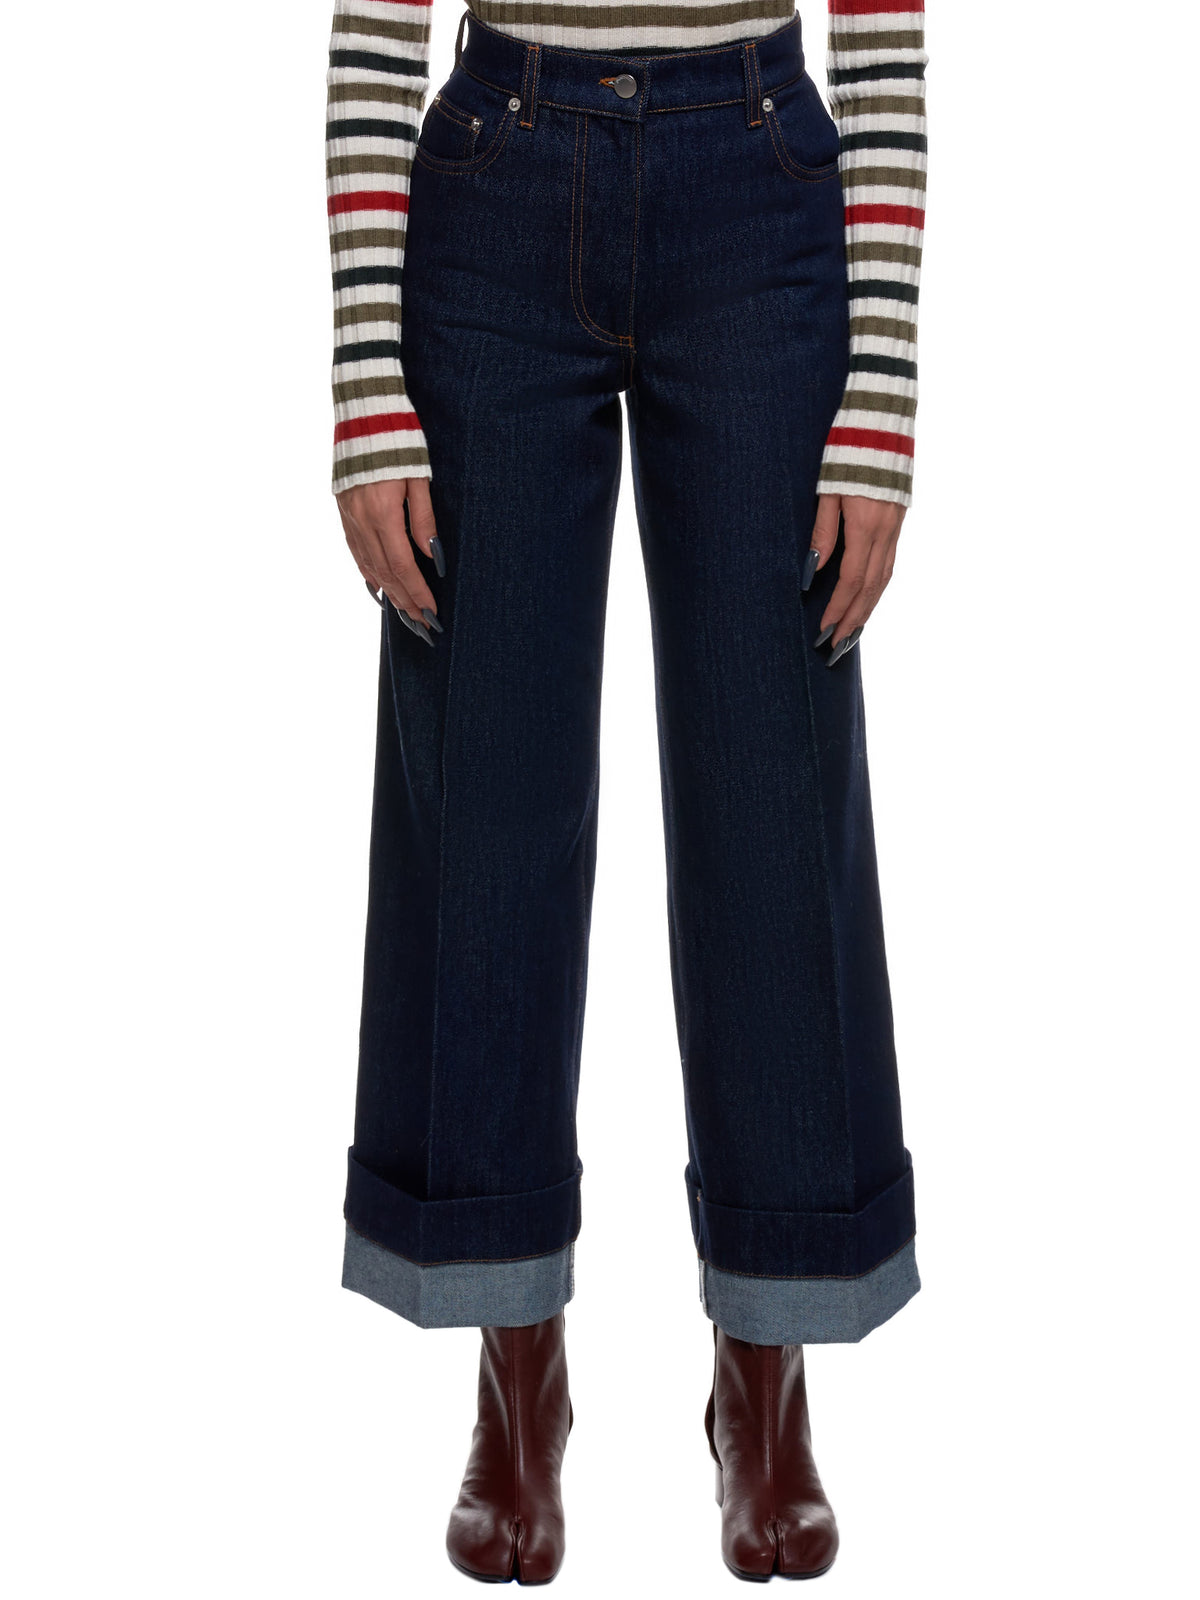 JW Anderson Jeans | H.Lorenzo - front